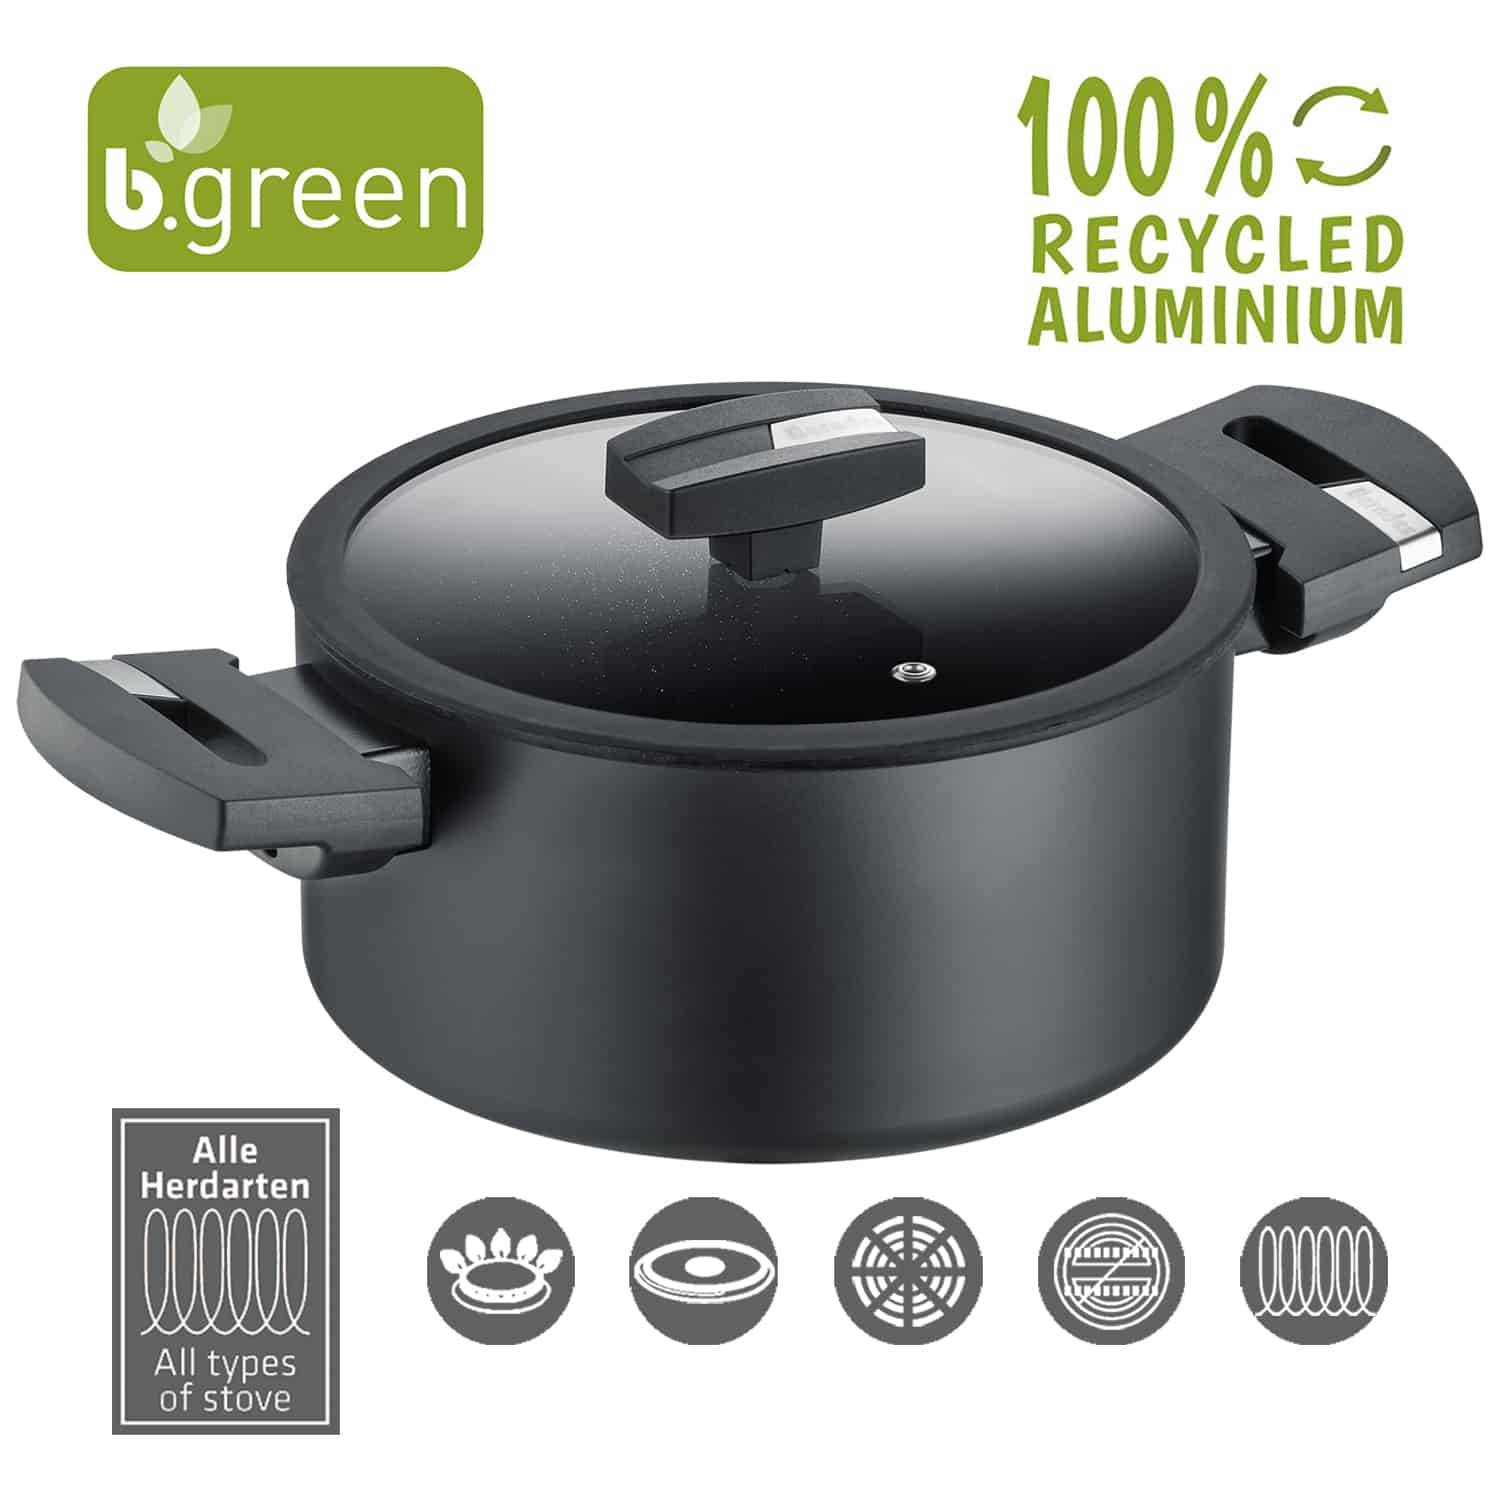 Berndes Kochtopf mit Glasdeckel b.green Alu Recycled Induction schwarz 24 cm